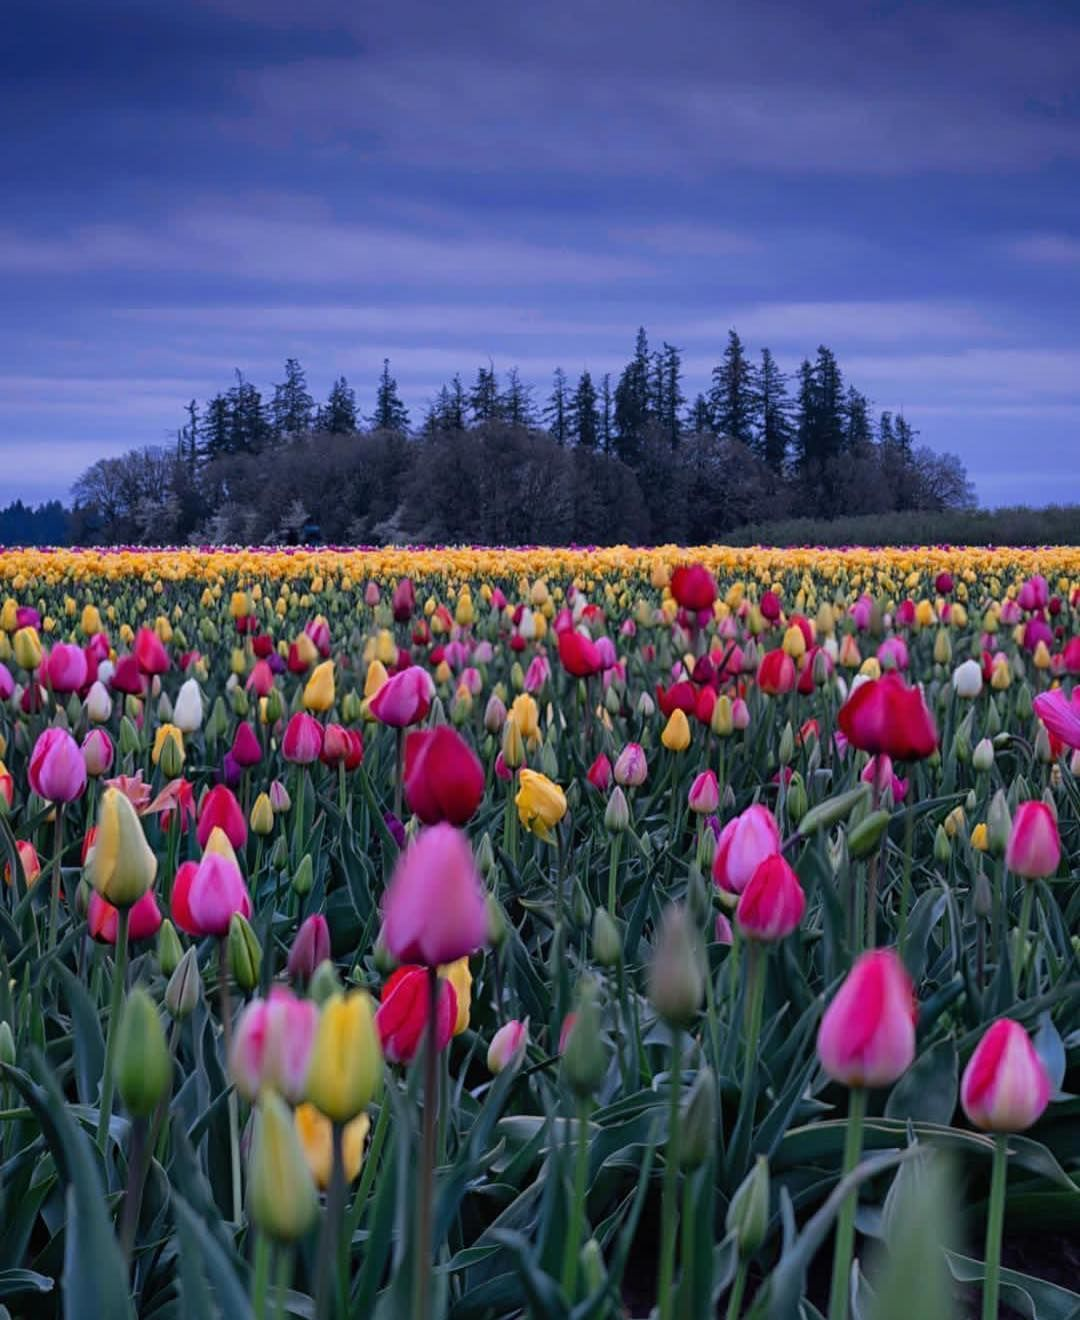 Wooden Shoe Tulip Festival 2020.Wooden Shoe Tulip Farm Oregon Usa America Tulip Flower